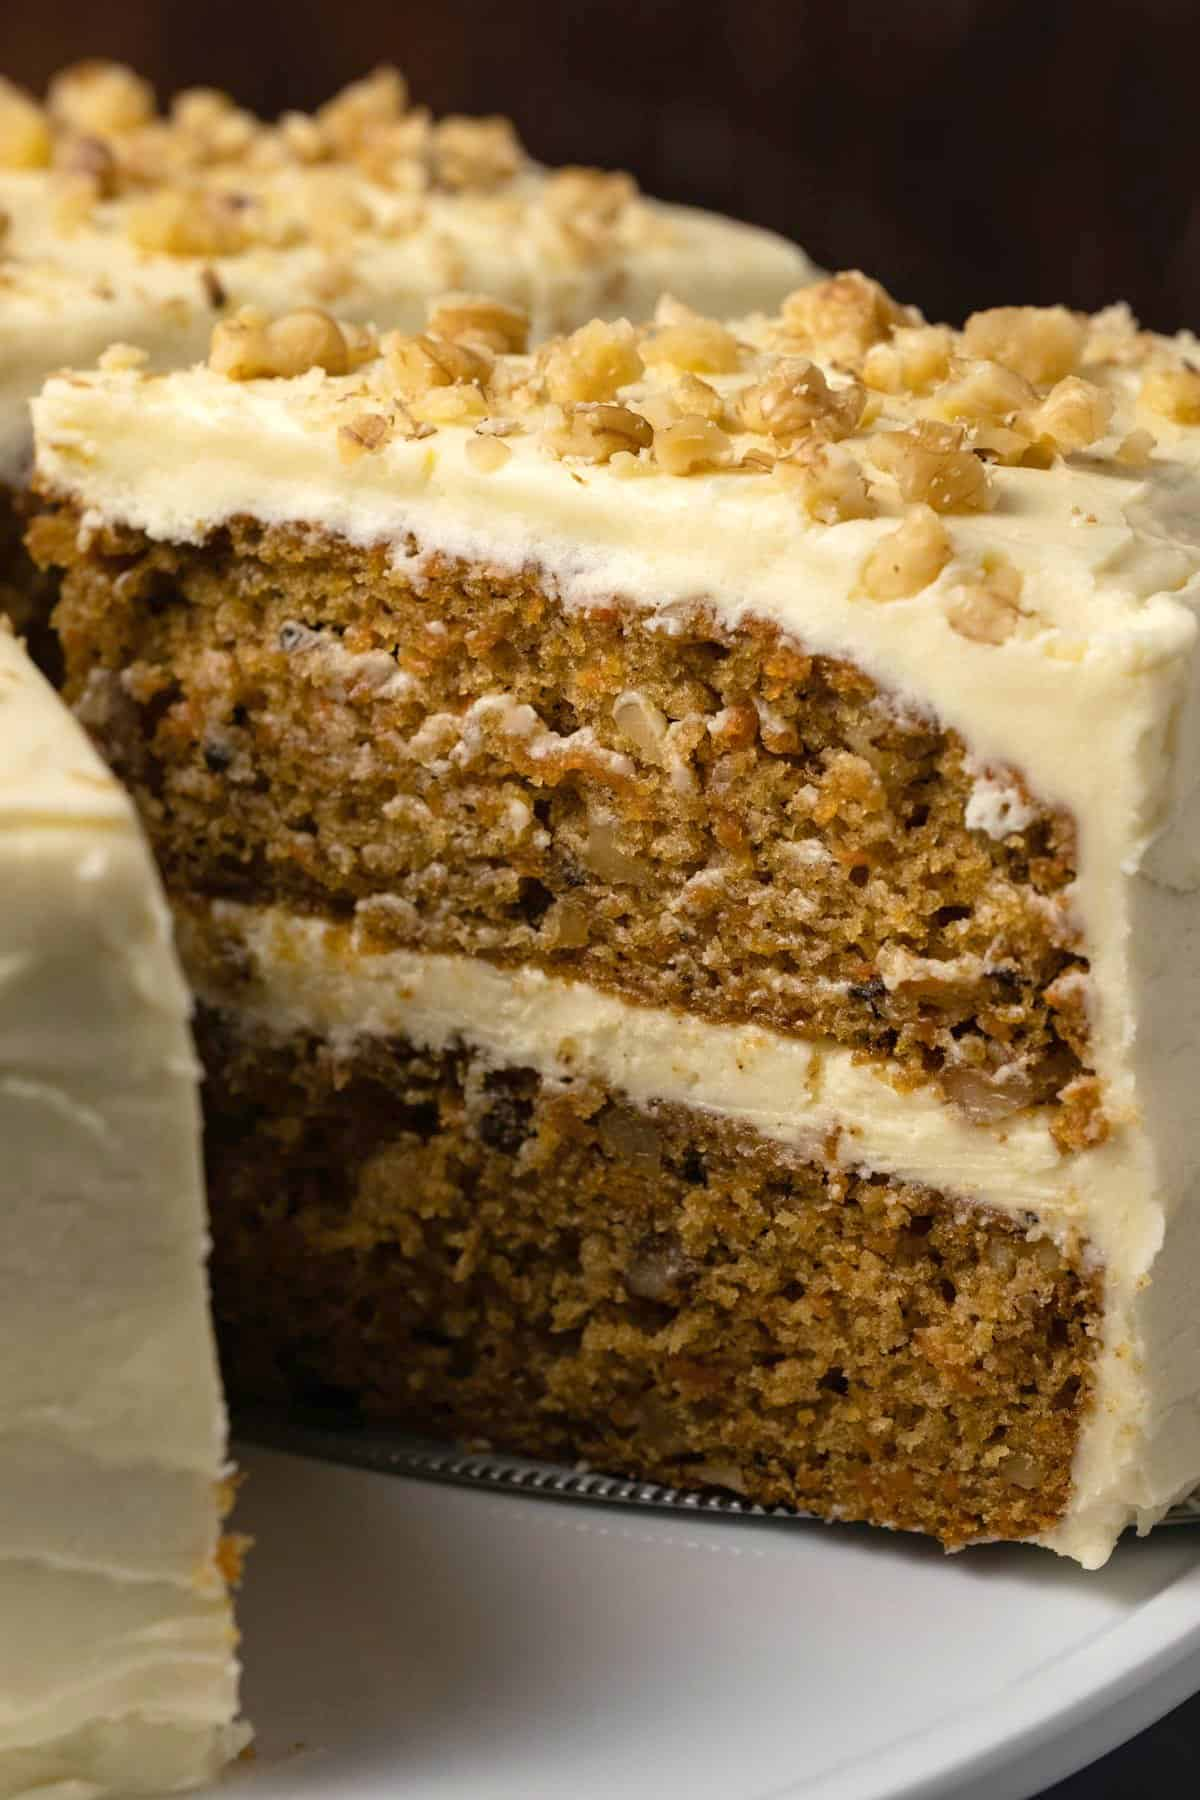 Carrot cake on a cake stand with one slice cut and ready to serve.